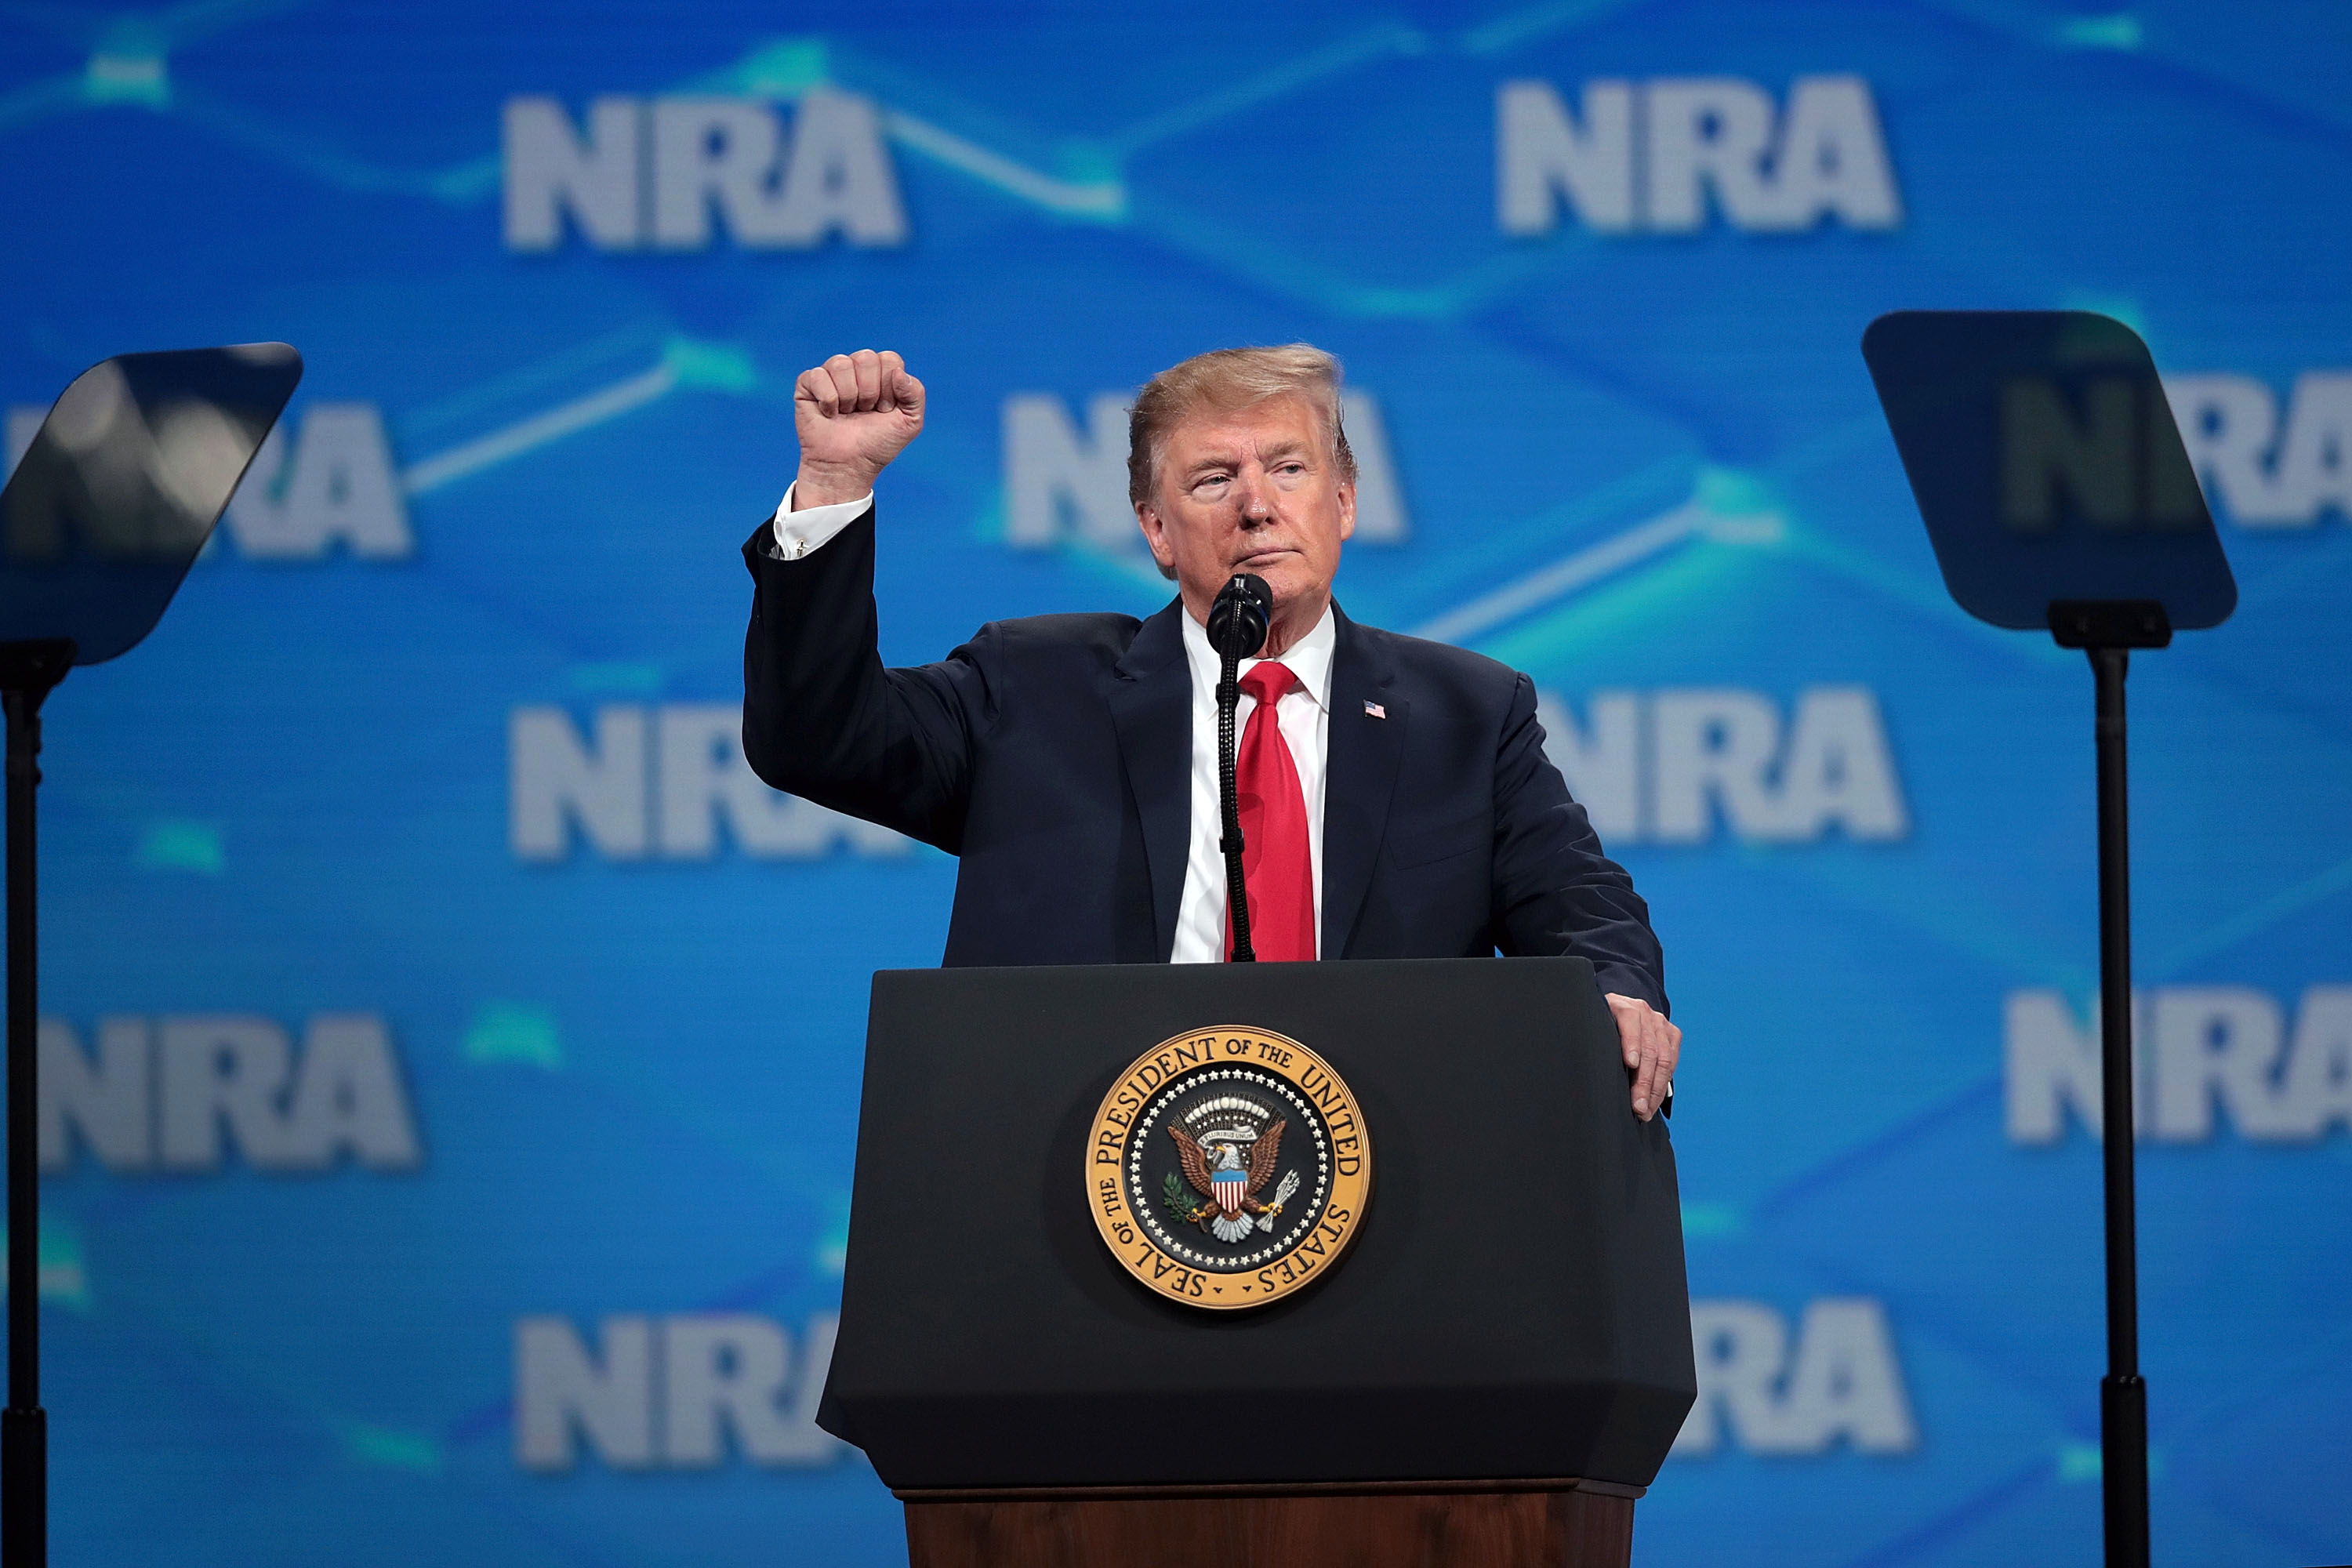 President Donald Trump gestures to guests at the National Rifle Association's annual meeting in Indianapolis in 2019